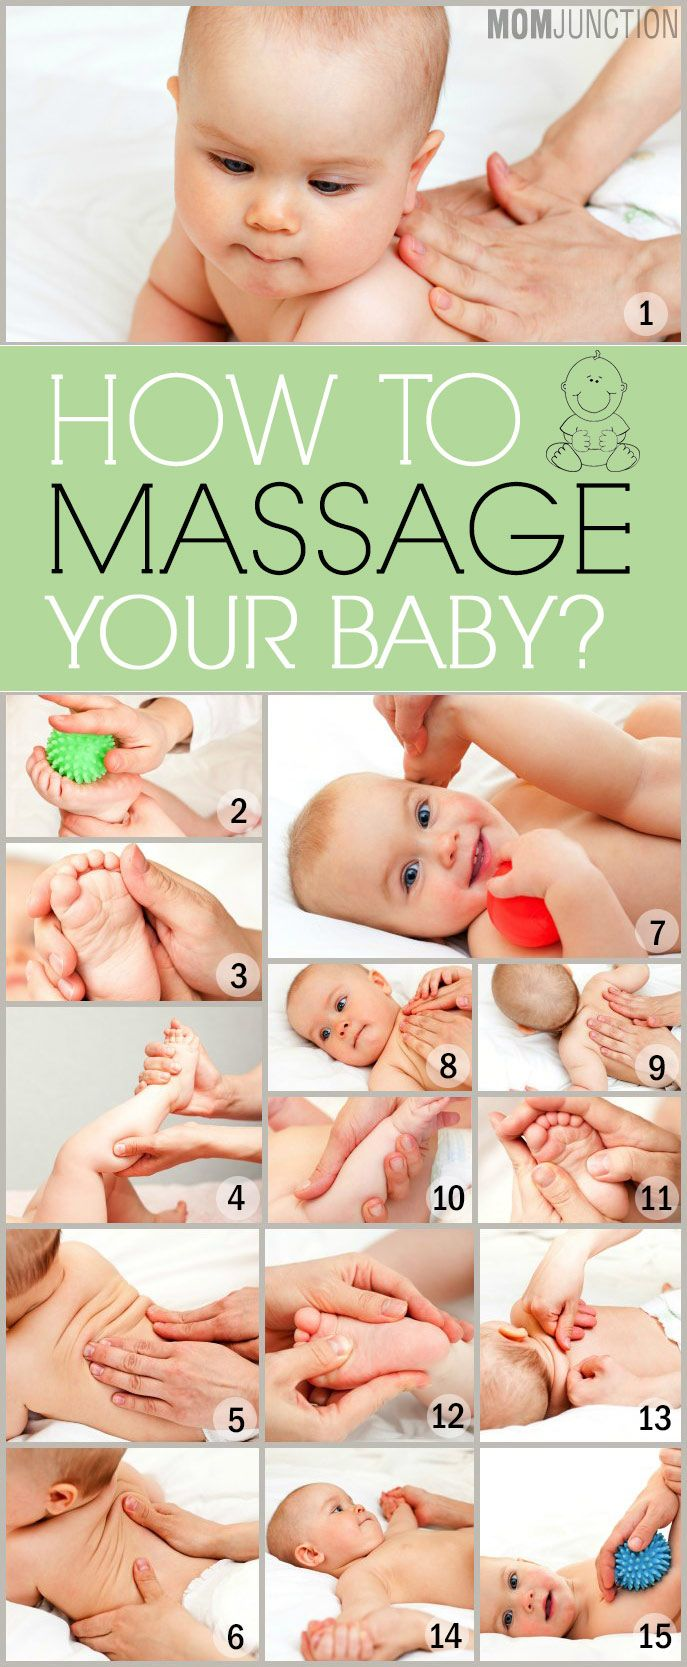 How to massage the baby 75